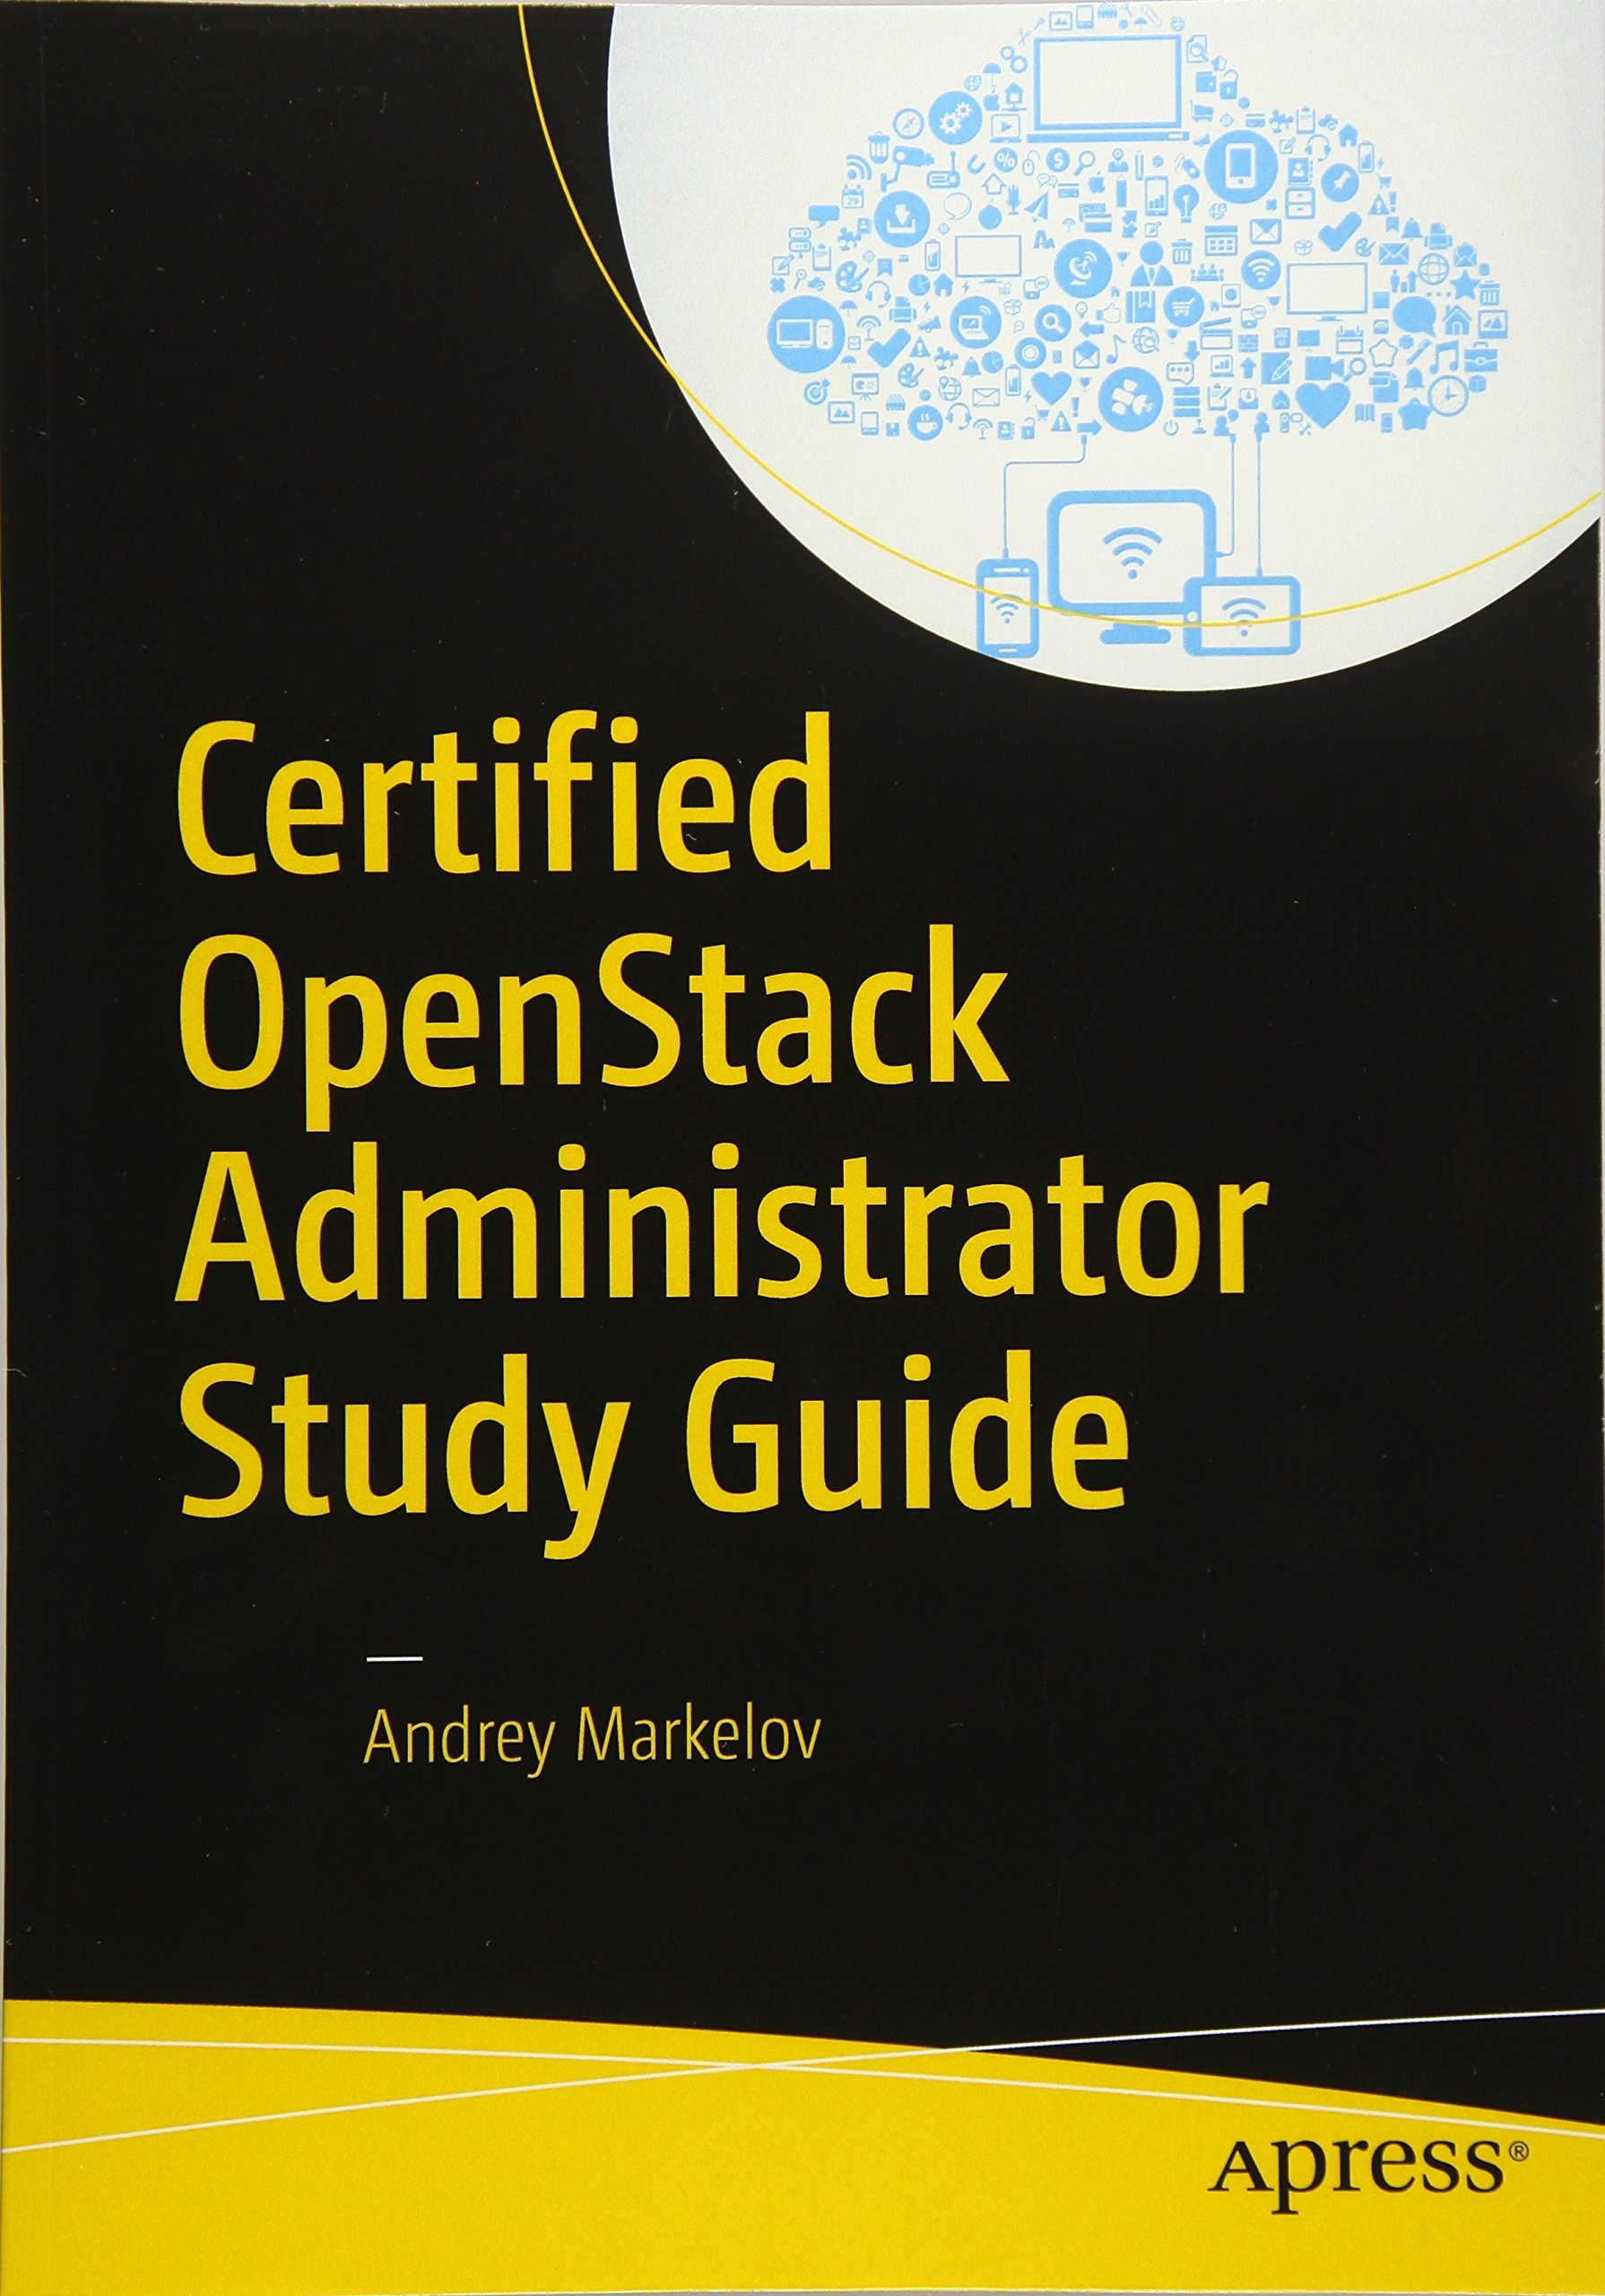 Certified Openstack Administrator Study Guide Amazon Andrey